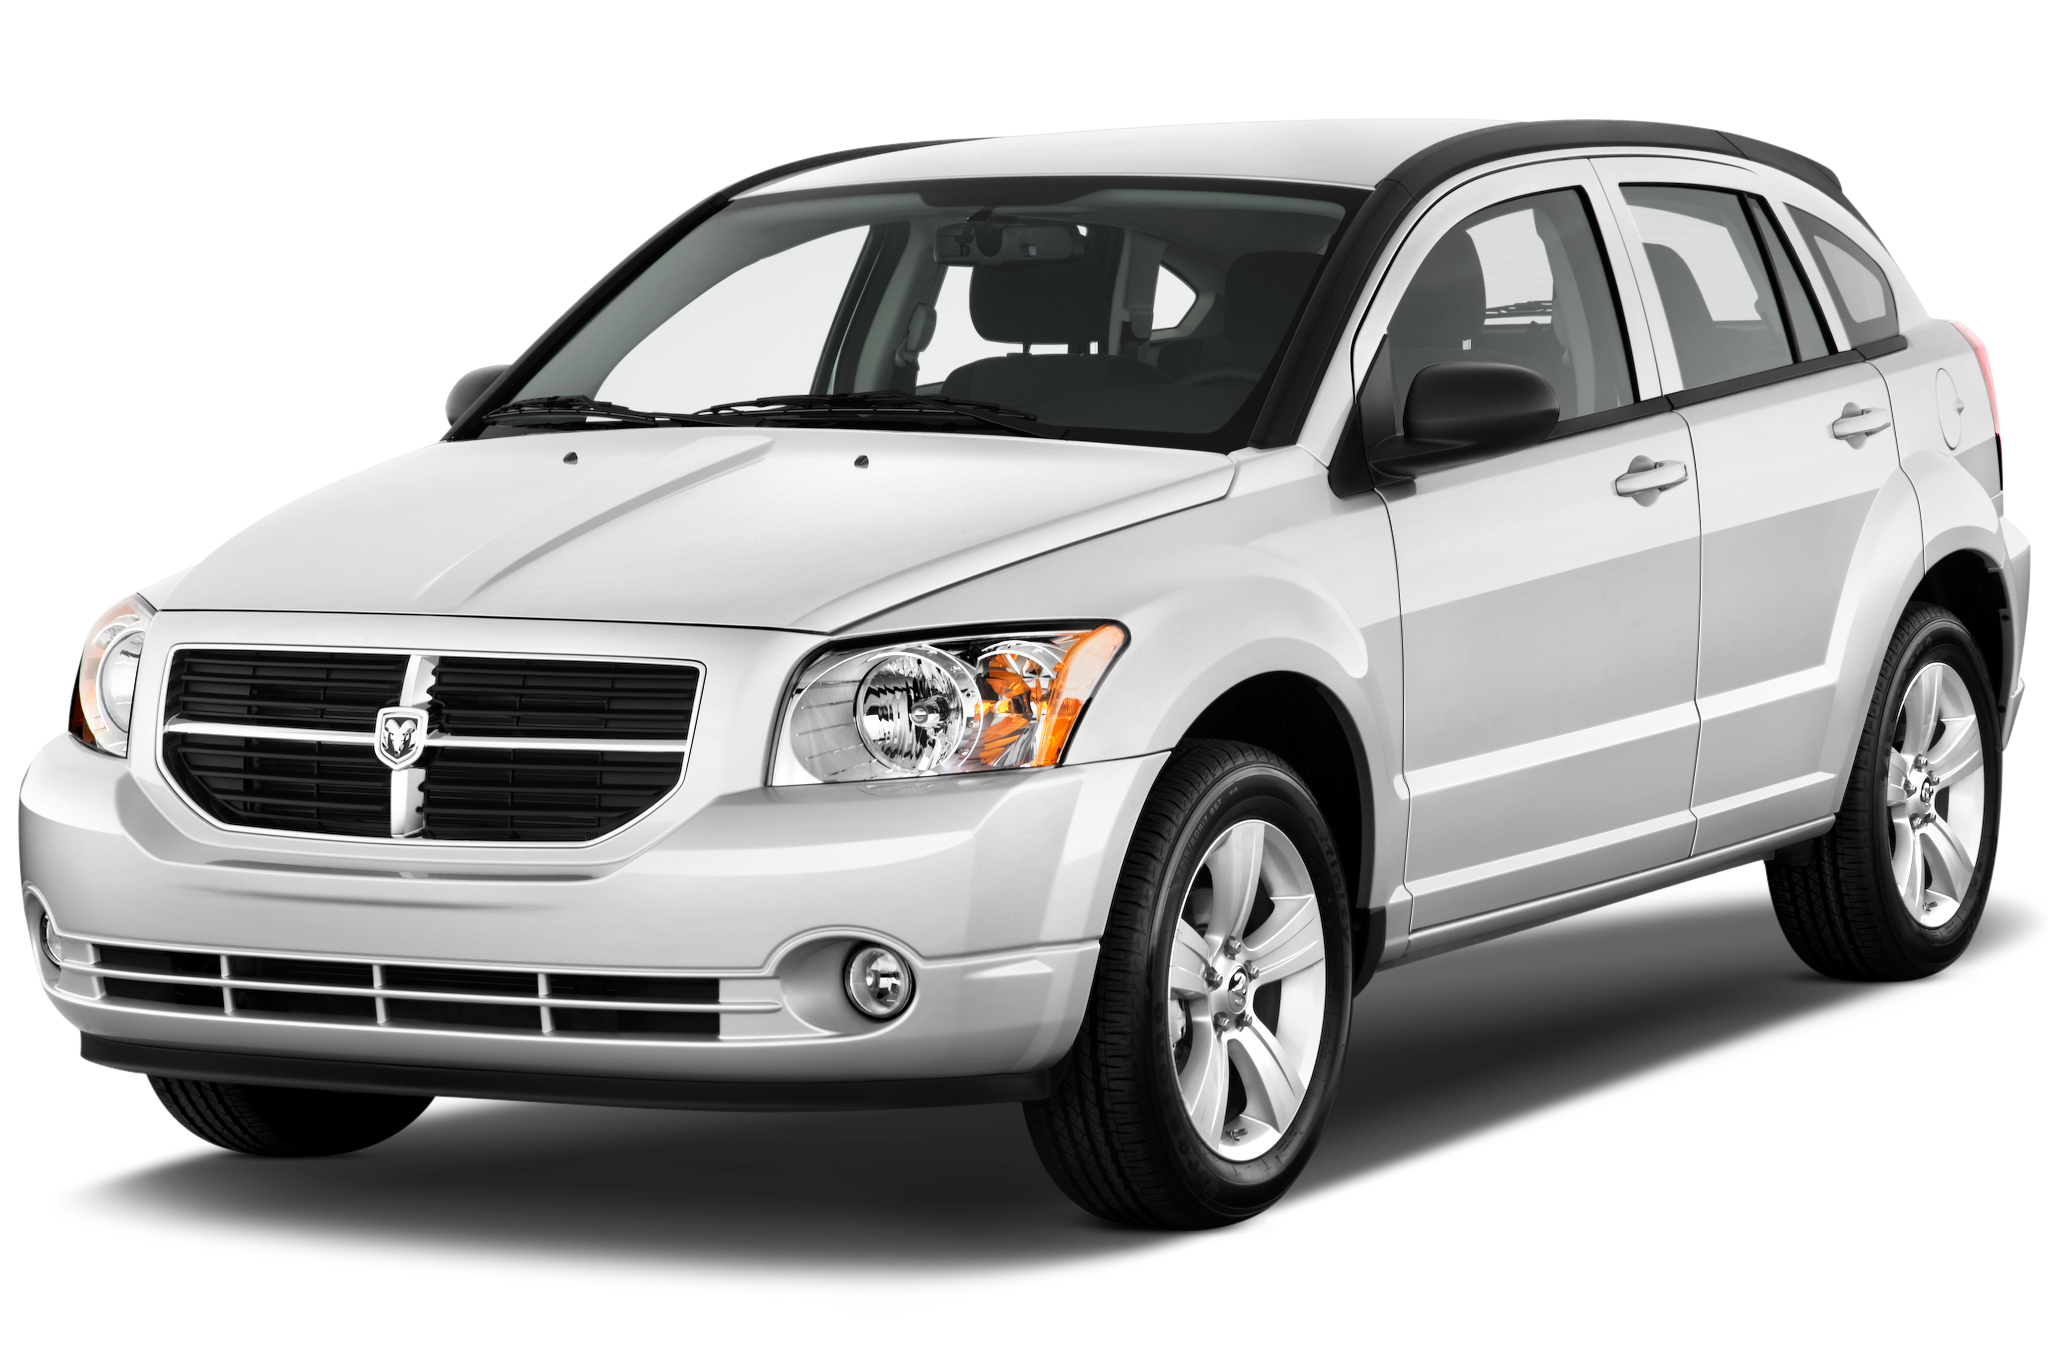 2011 Dodge Caliber Manual Guide Online User Fuse Box 2012 Reviews And Rating Motor Trend Rh Motortrend Com Diagram